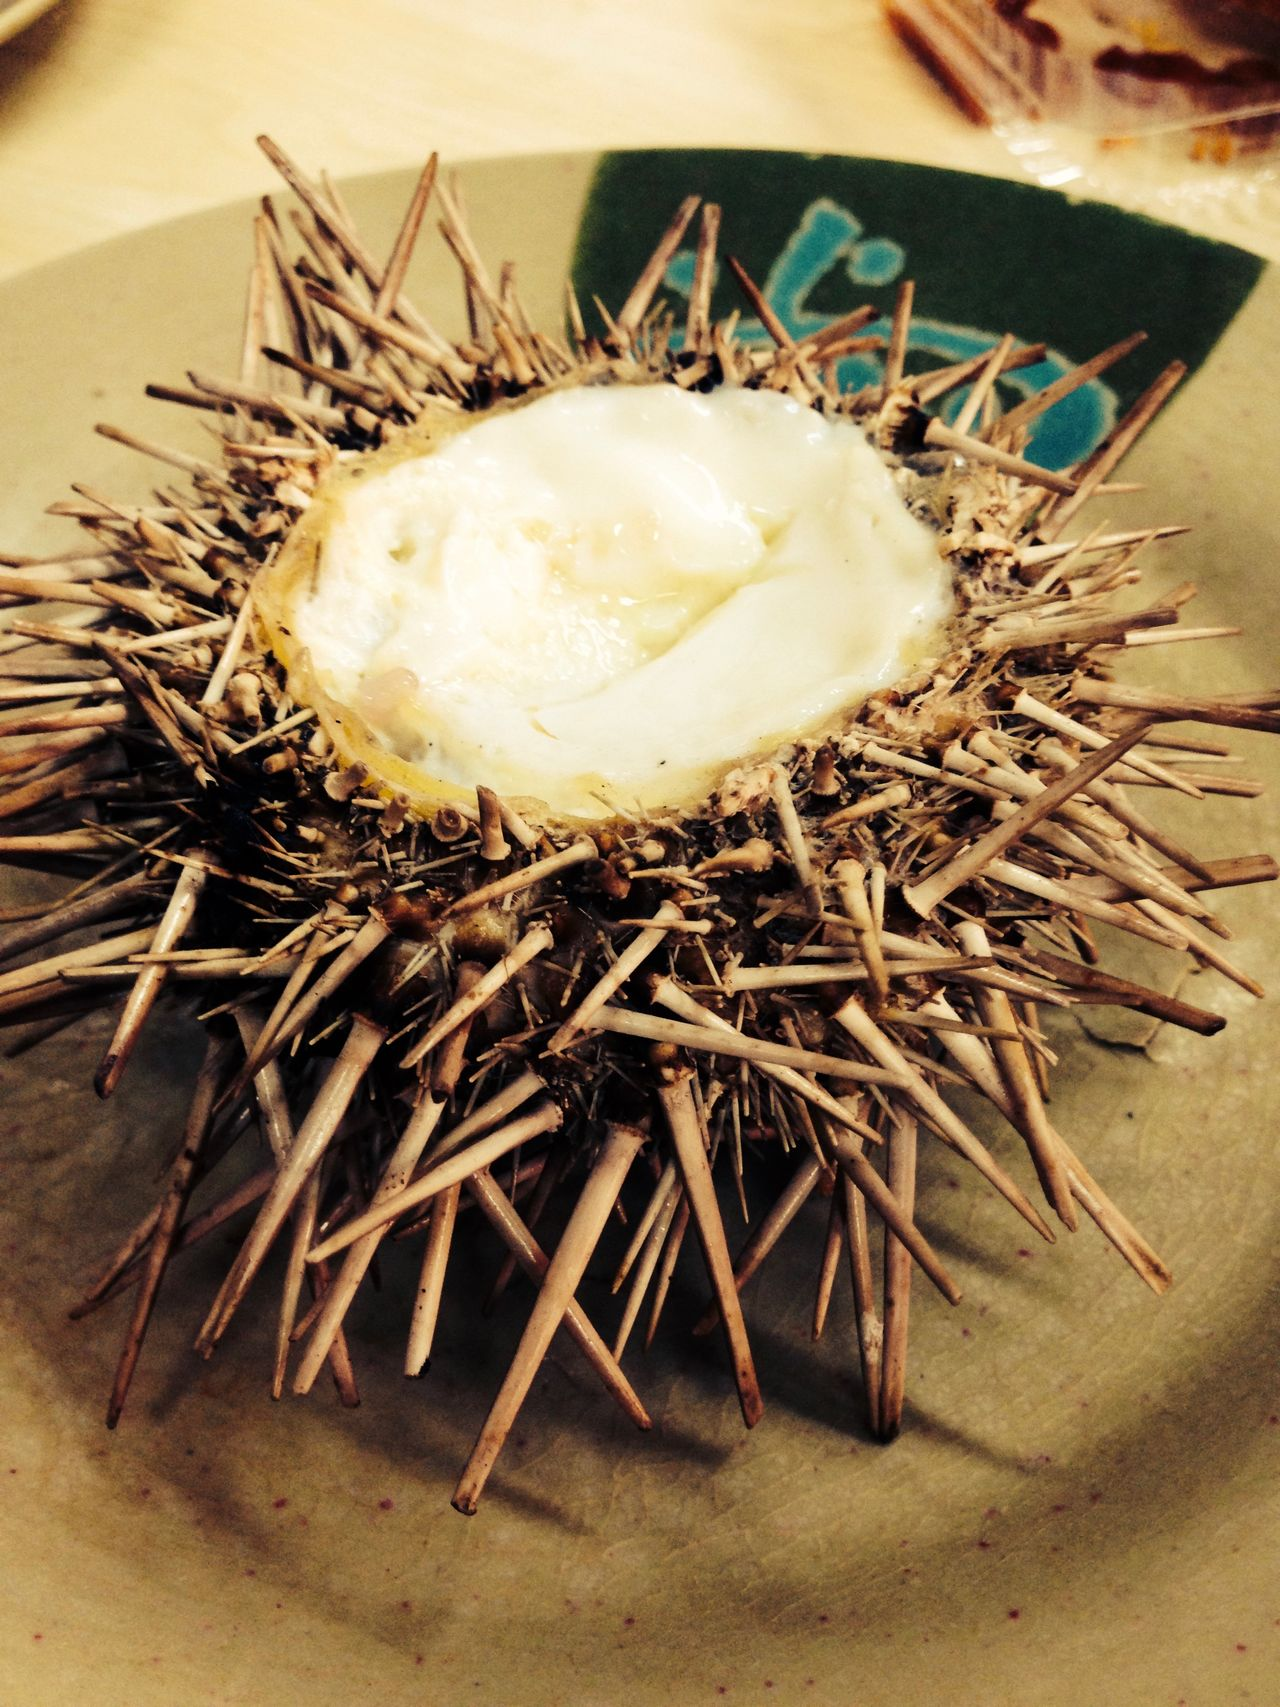 Animal Themes China Close-up Coconut Day Food Food And Drink Freshness Healthy Eating Nature No People Outdoors Seafood Seaurchin Seaurchins Spike Spiky Unusual